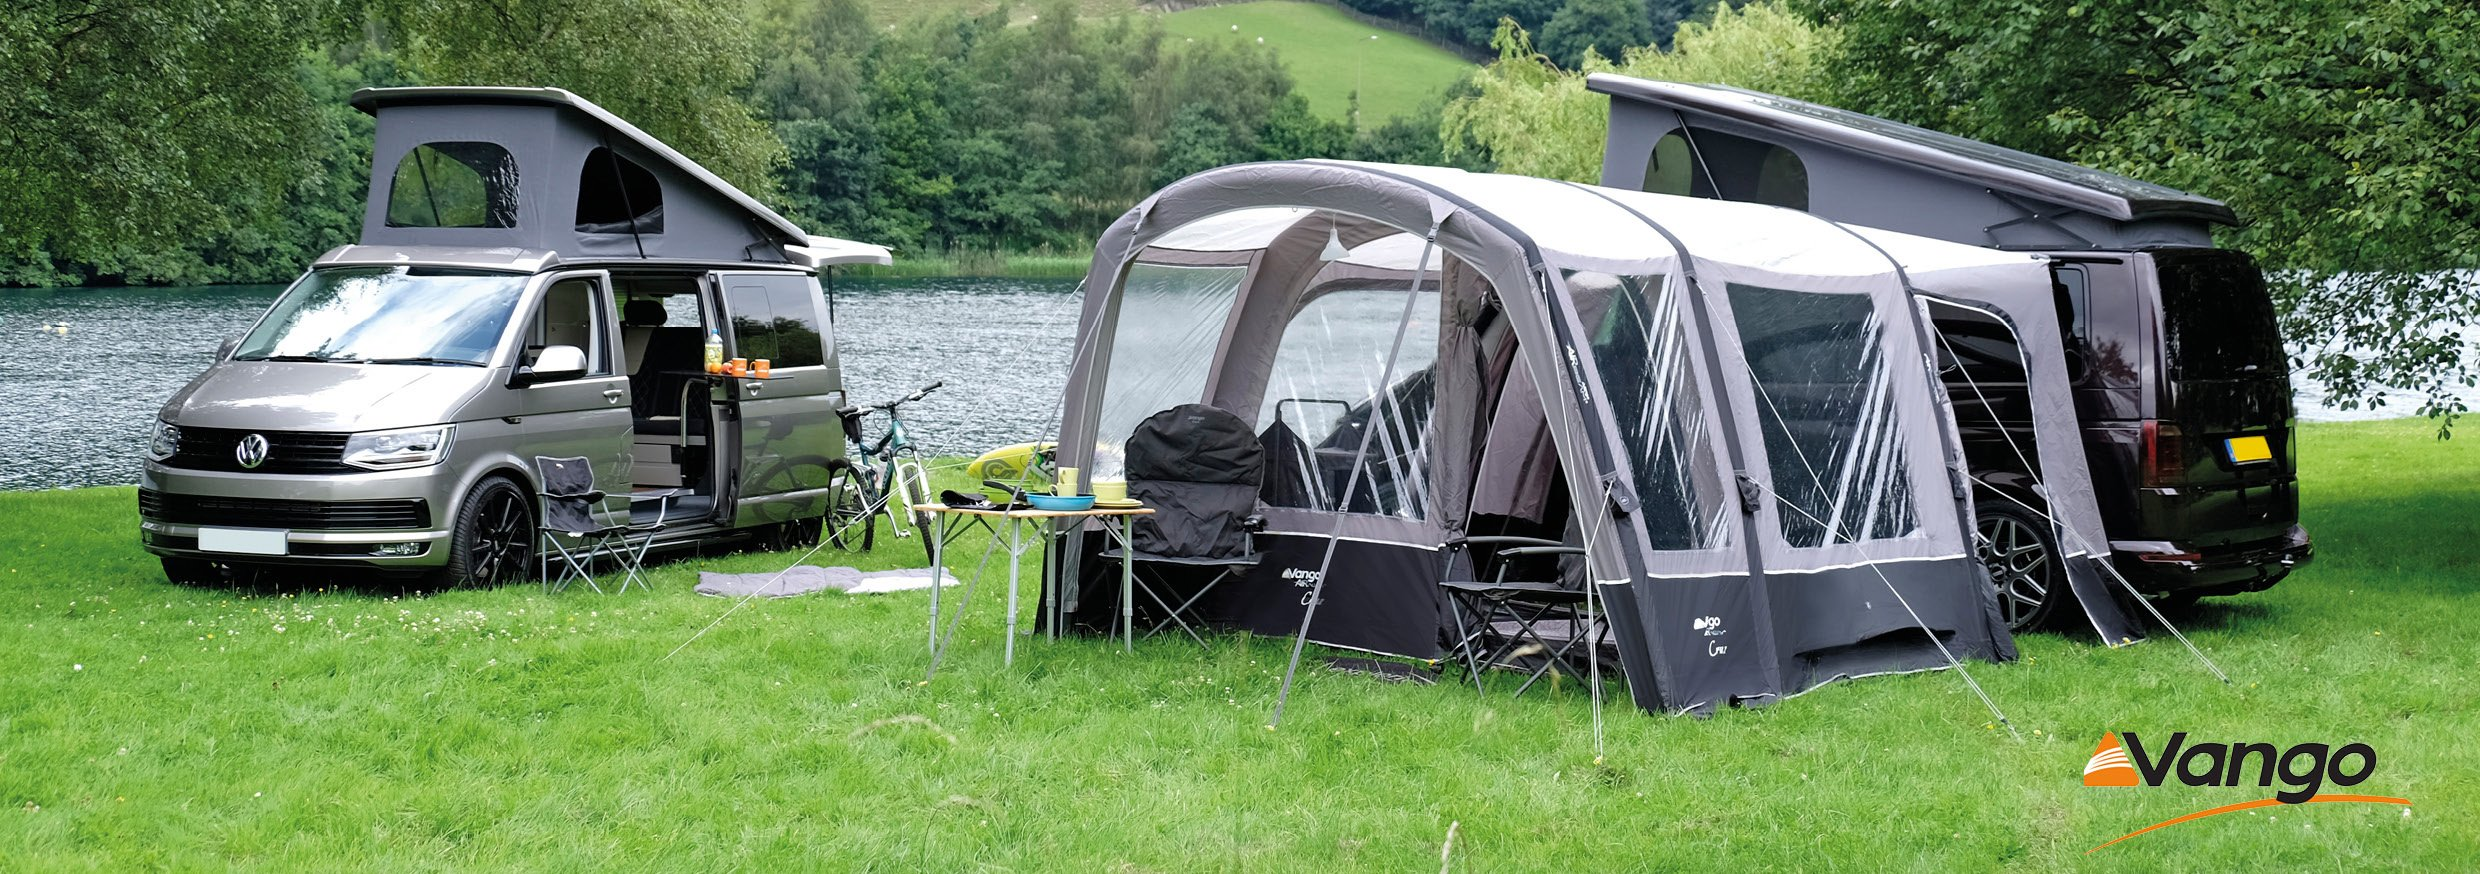 The Vango 2017 Awning Camping Accessories Range Just Kampers